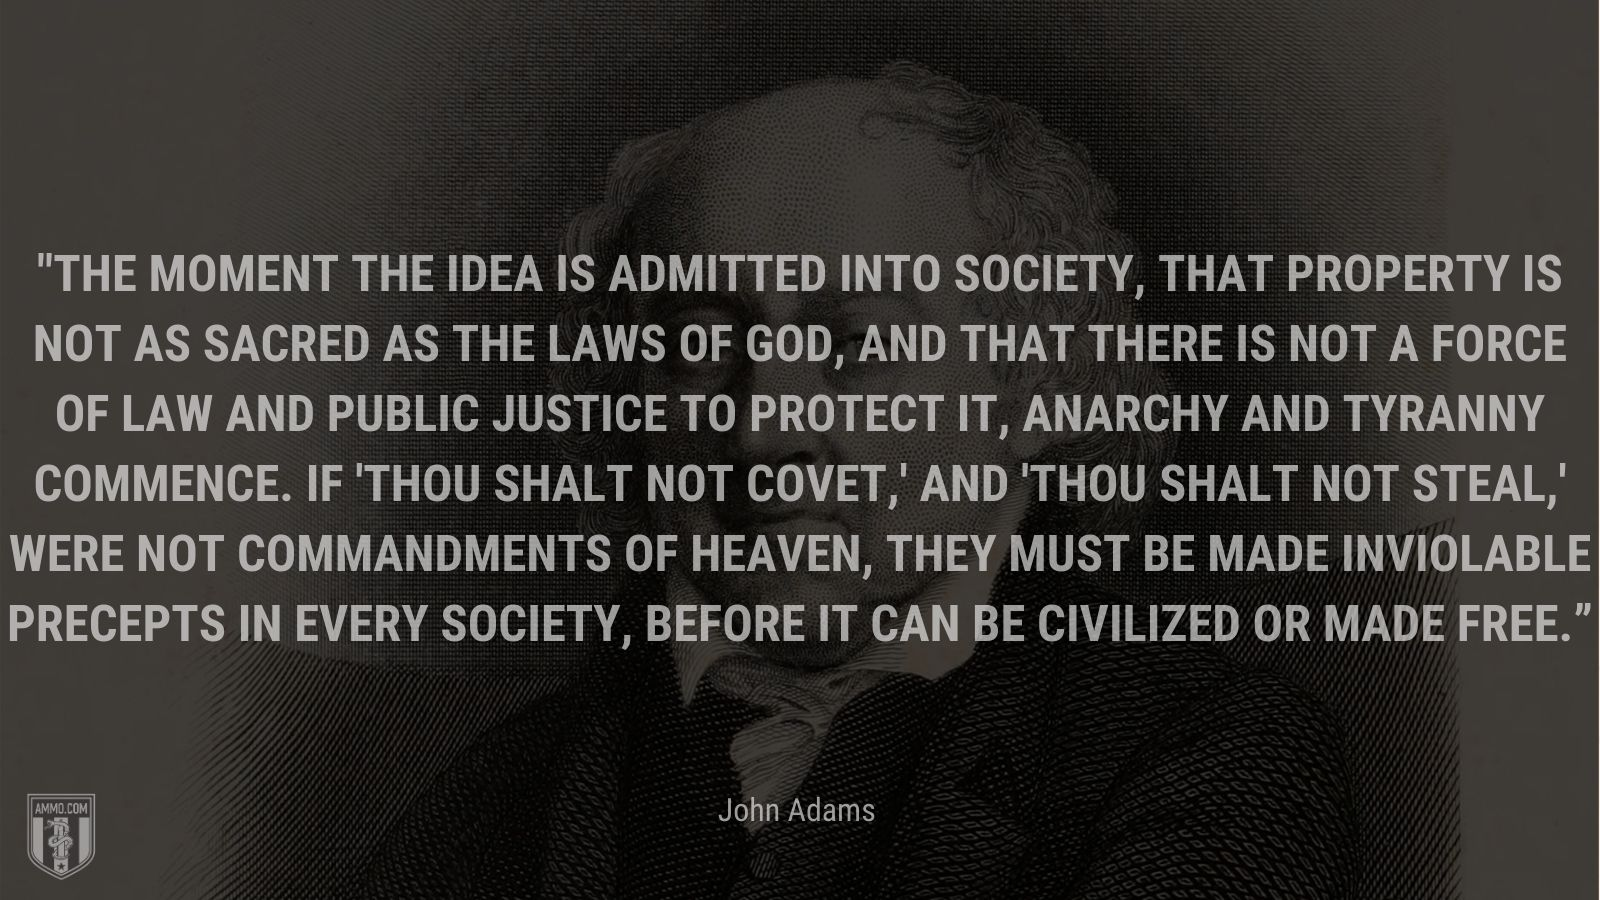 """""""The moment the idea is admitted into society, that property is not as sacred as the laws of God, and that there is not a force of law and public justice to protect it, anarchy and tyranny commence. If 'Thou shalt not covet,' and 'Thou shalt not steal,' were not commandments of Heaven, they must be made inviolable precepts in every society, before it can be civilized or made free."""" - John Adams"""